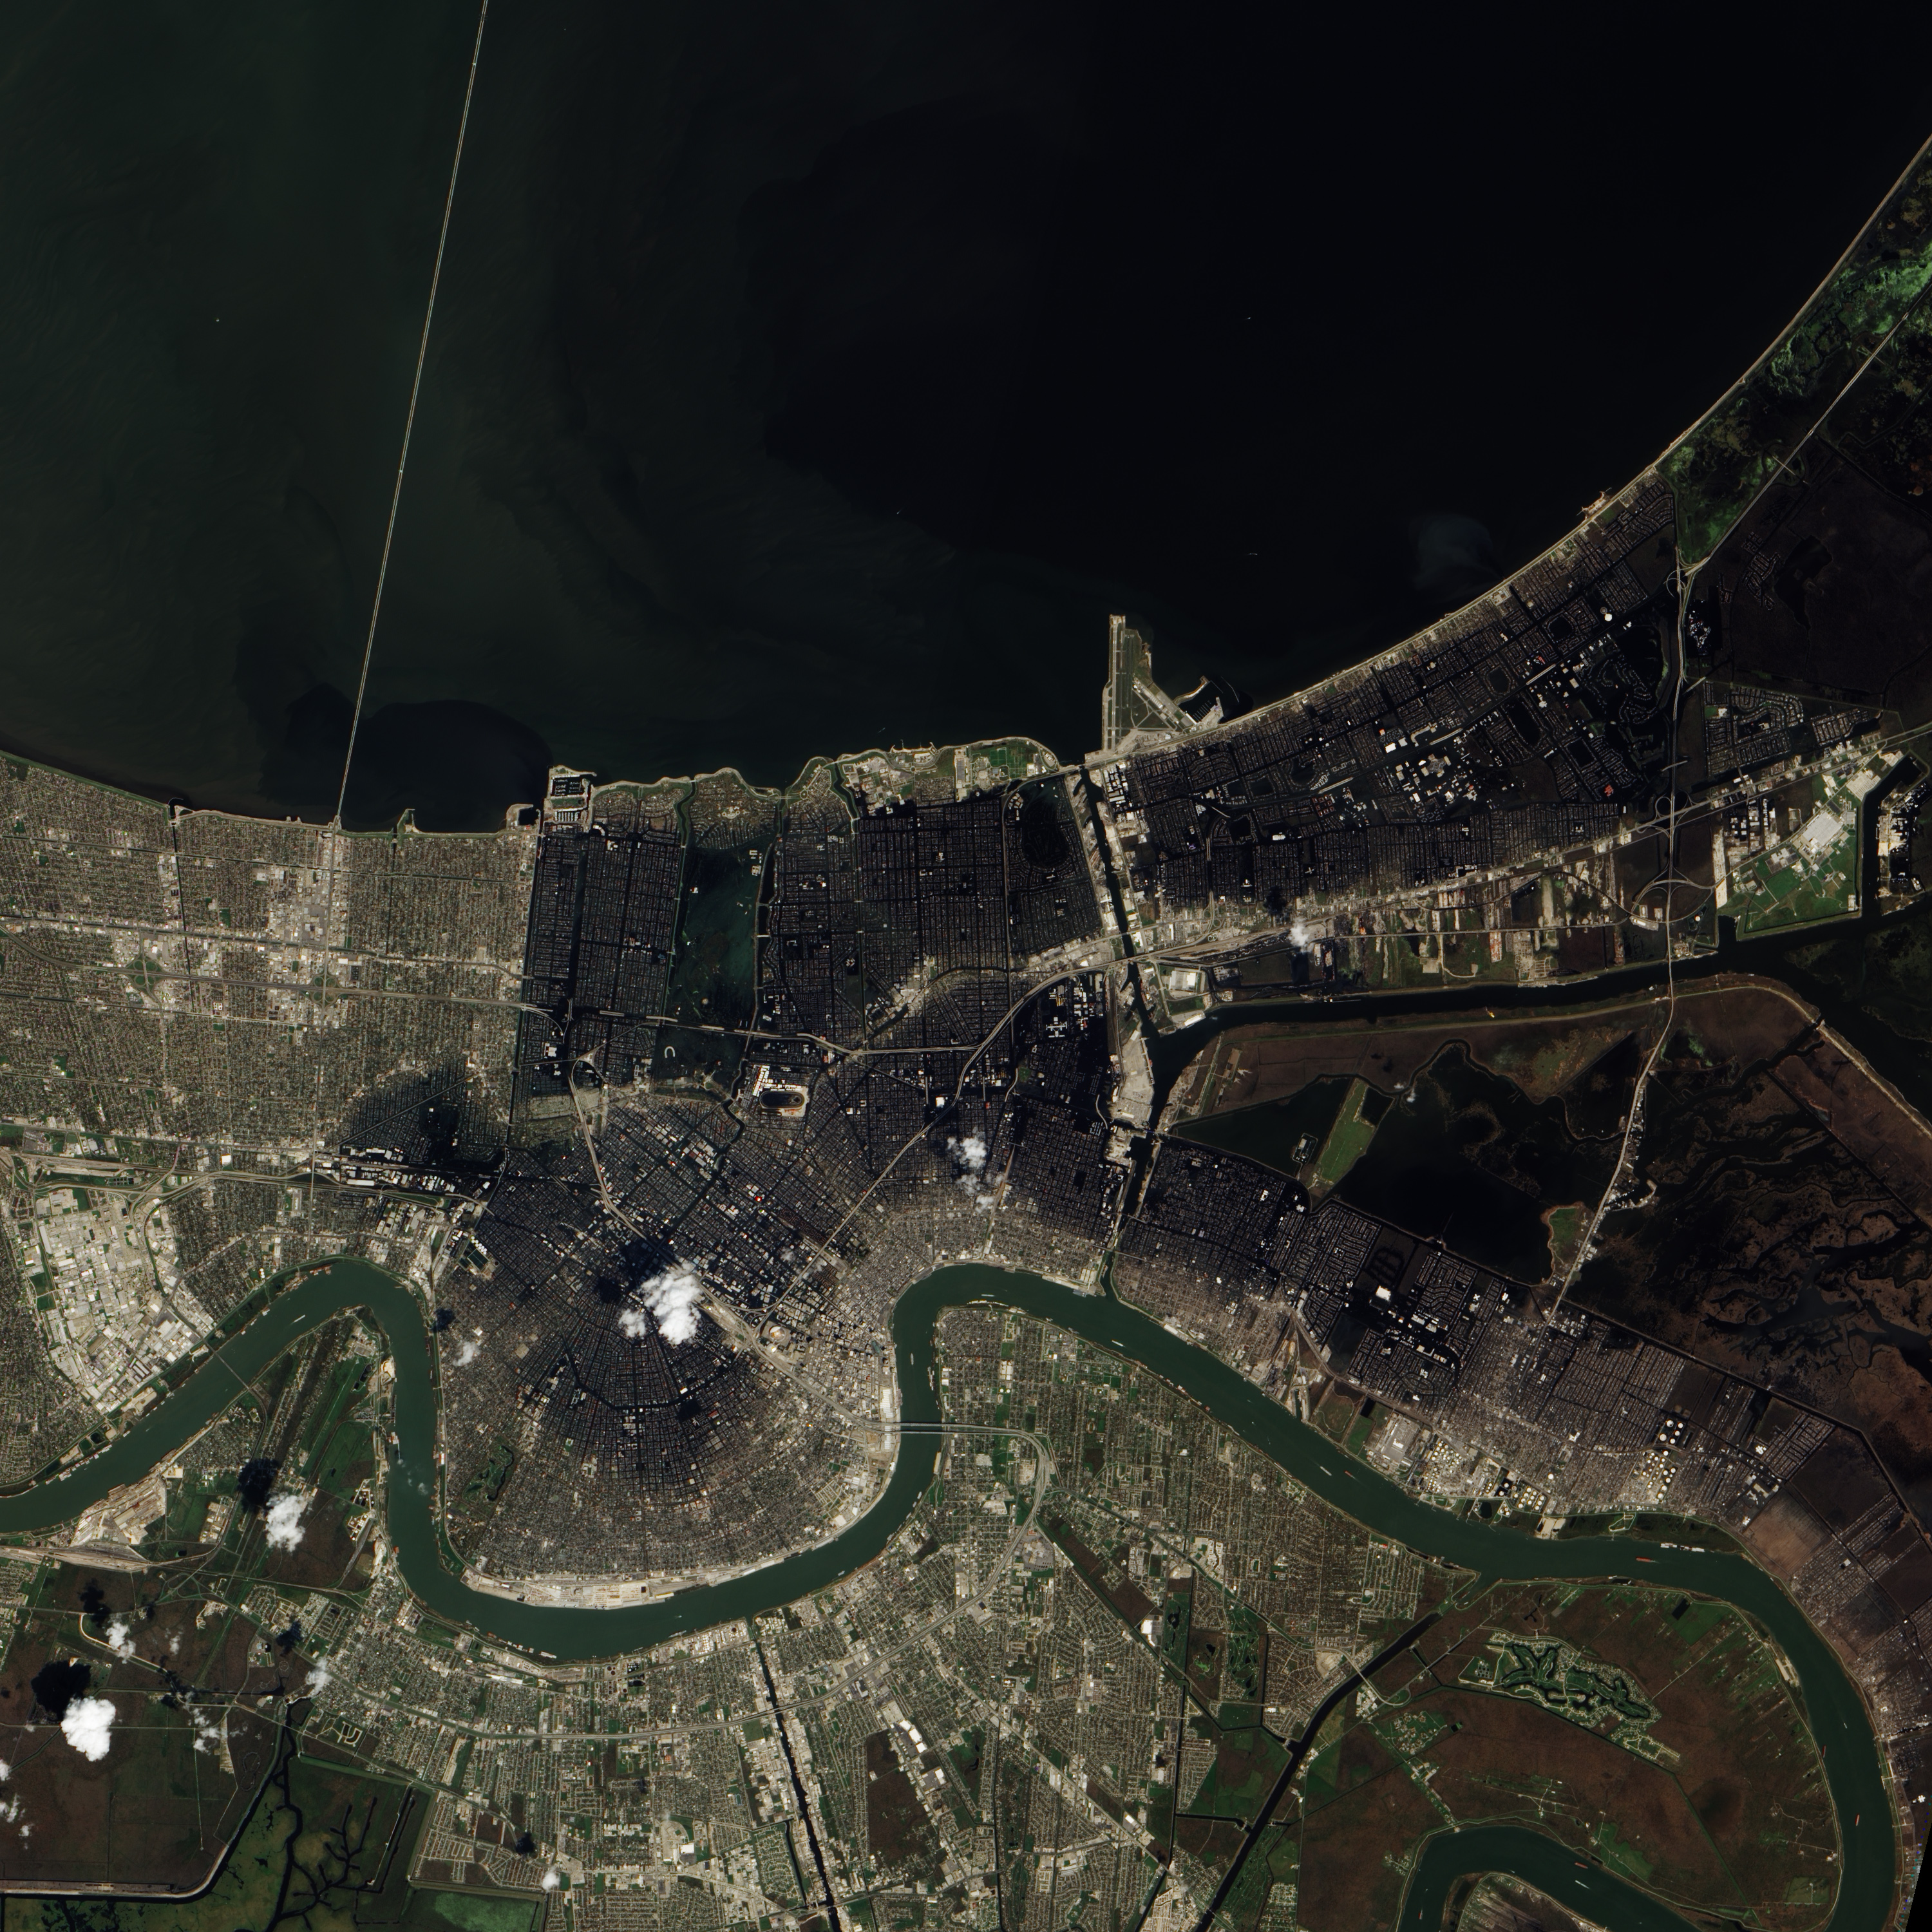 hurricane katrina nasa earth observatory - photo #28